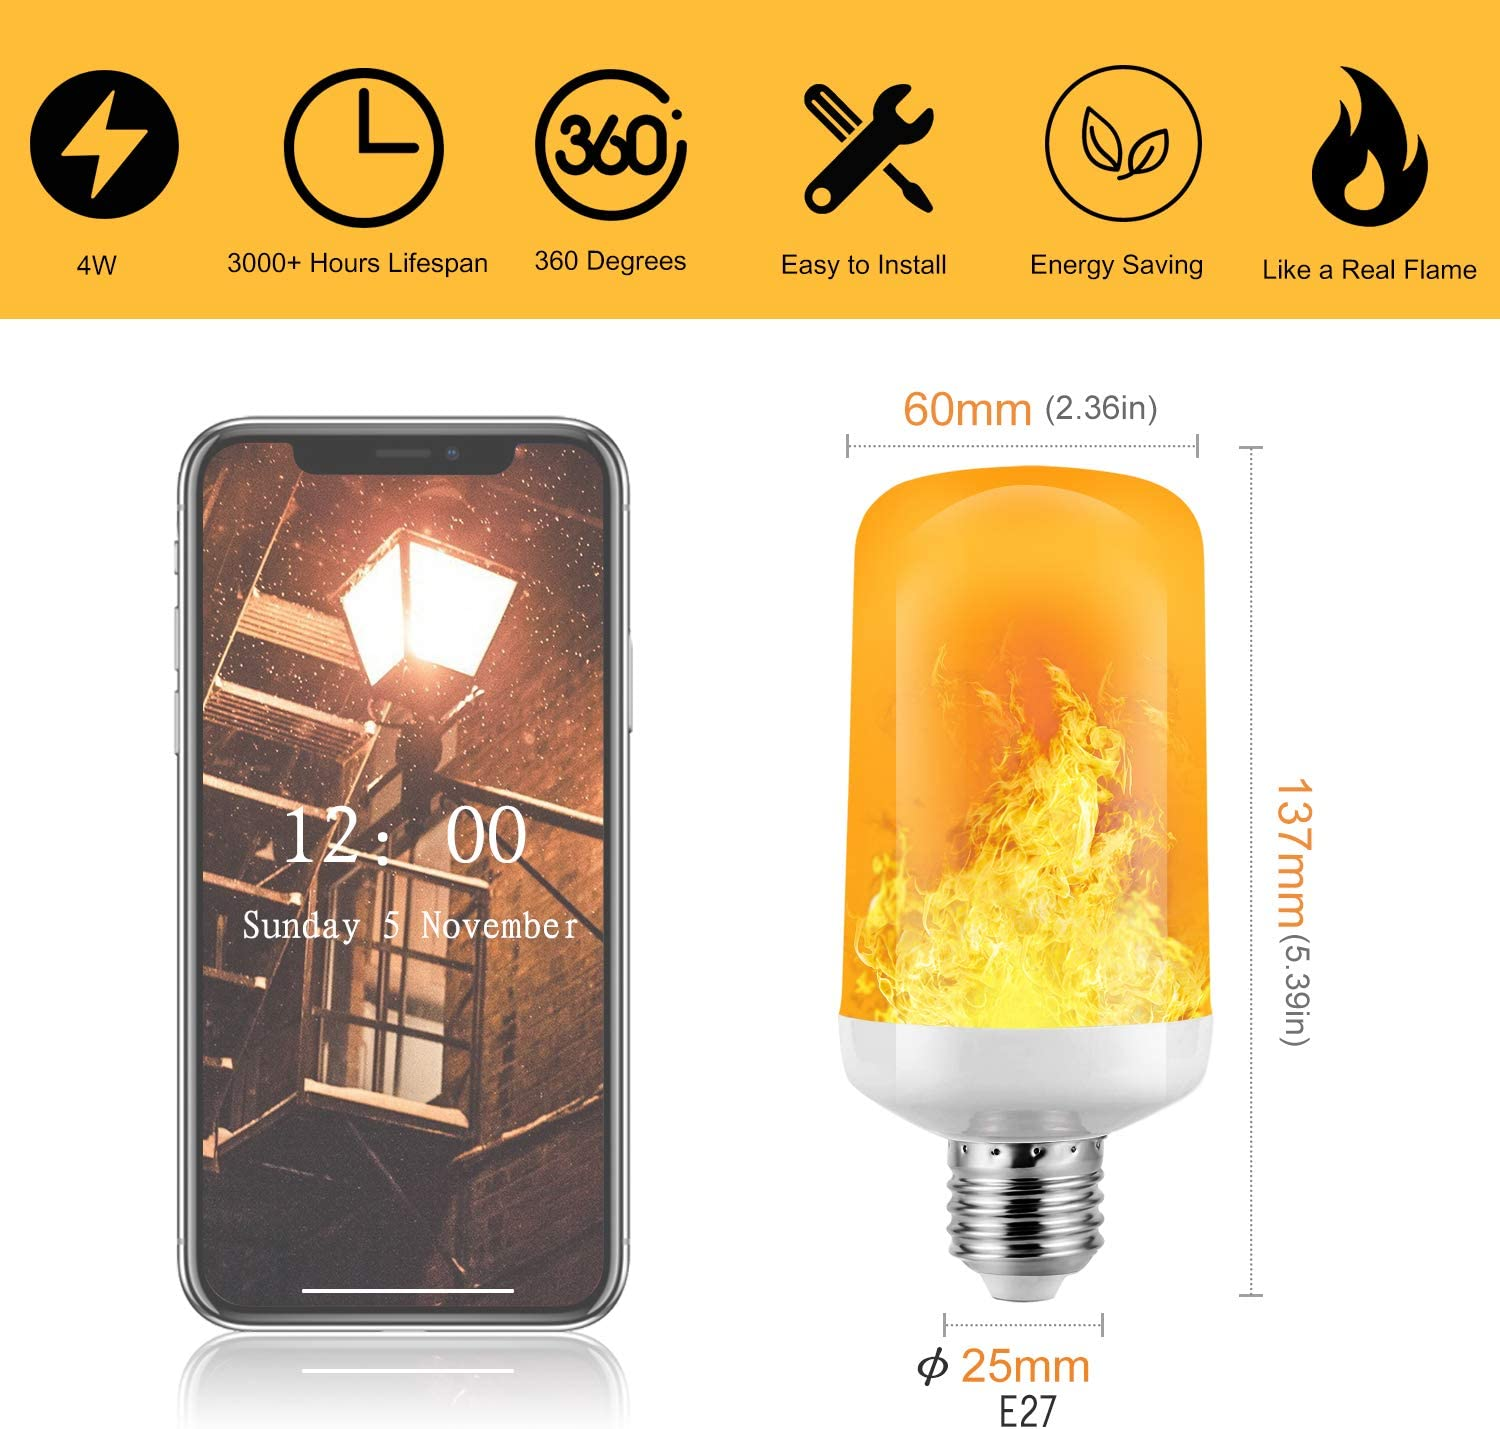 Simulated Decorative Atmosphere Lamps for New Year//Festival//Hotel//Bars//Home Decoration Flame Bulb,Funxim LED Flame Flickering Effect Fire Light New Year Bulbs Orange 2P